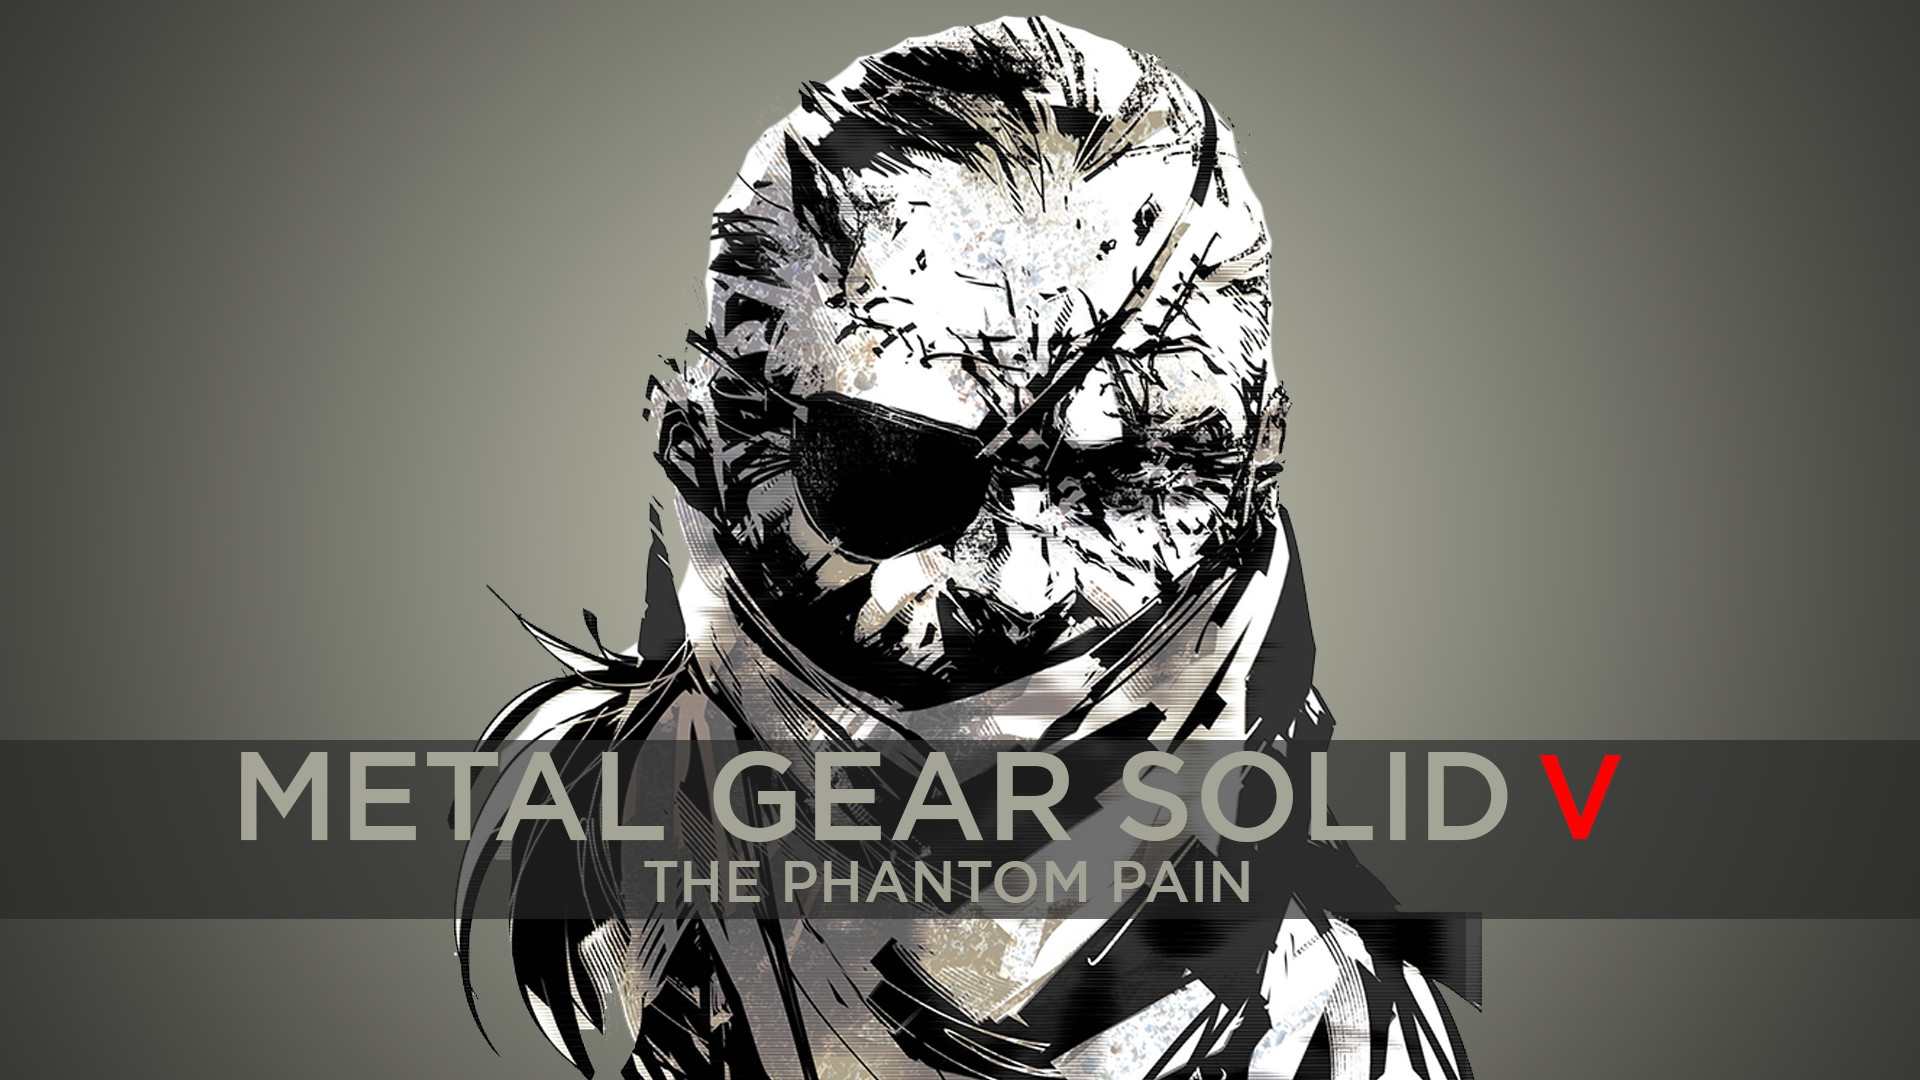 Made a simple MGSV wallpaper inspired by the MGS3 menu color scheme. What  do you guys think?